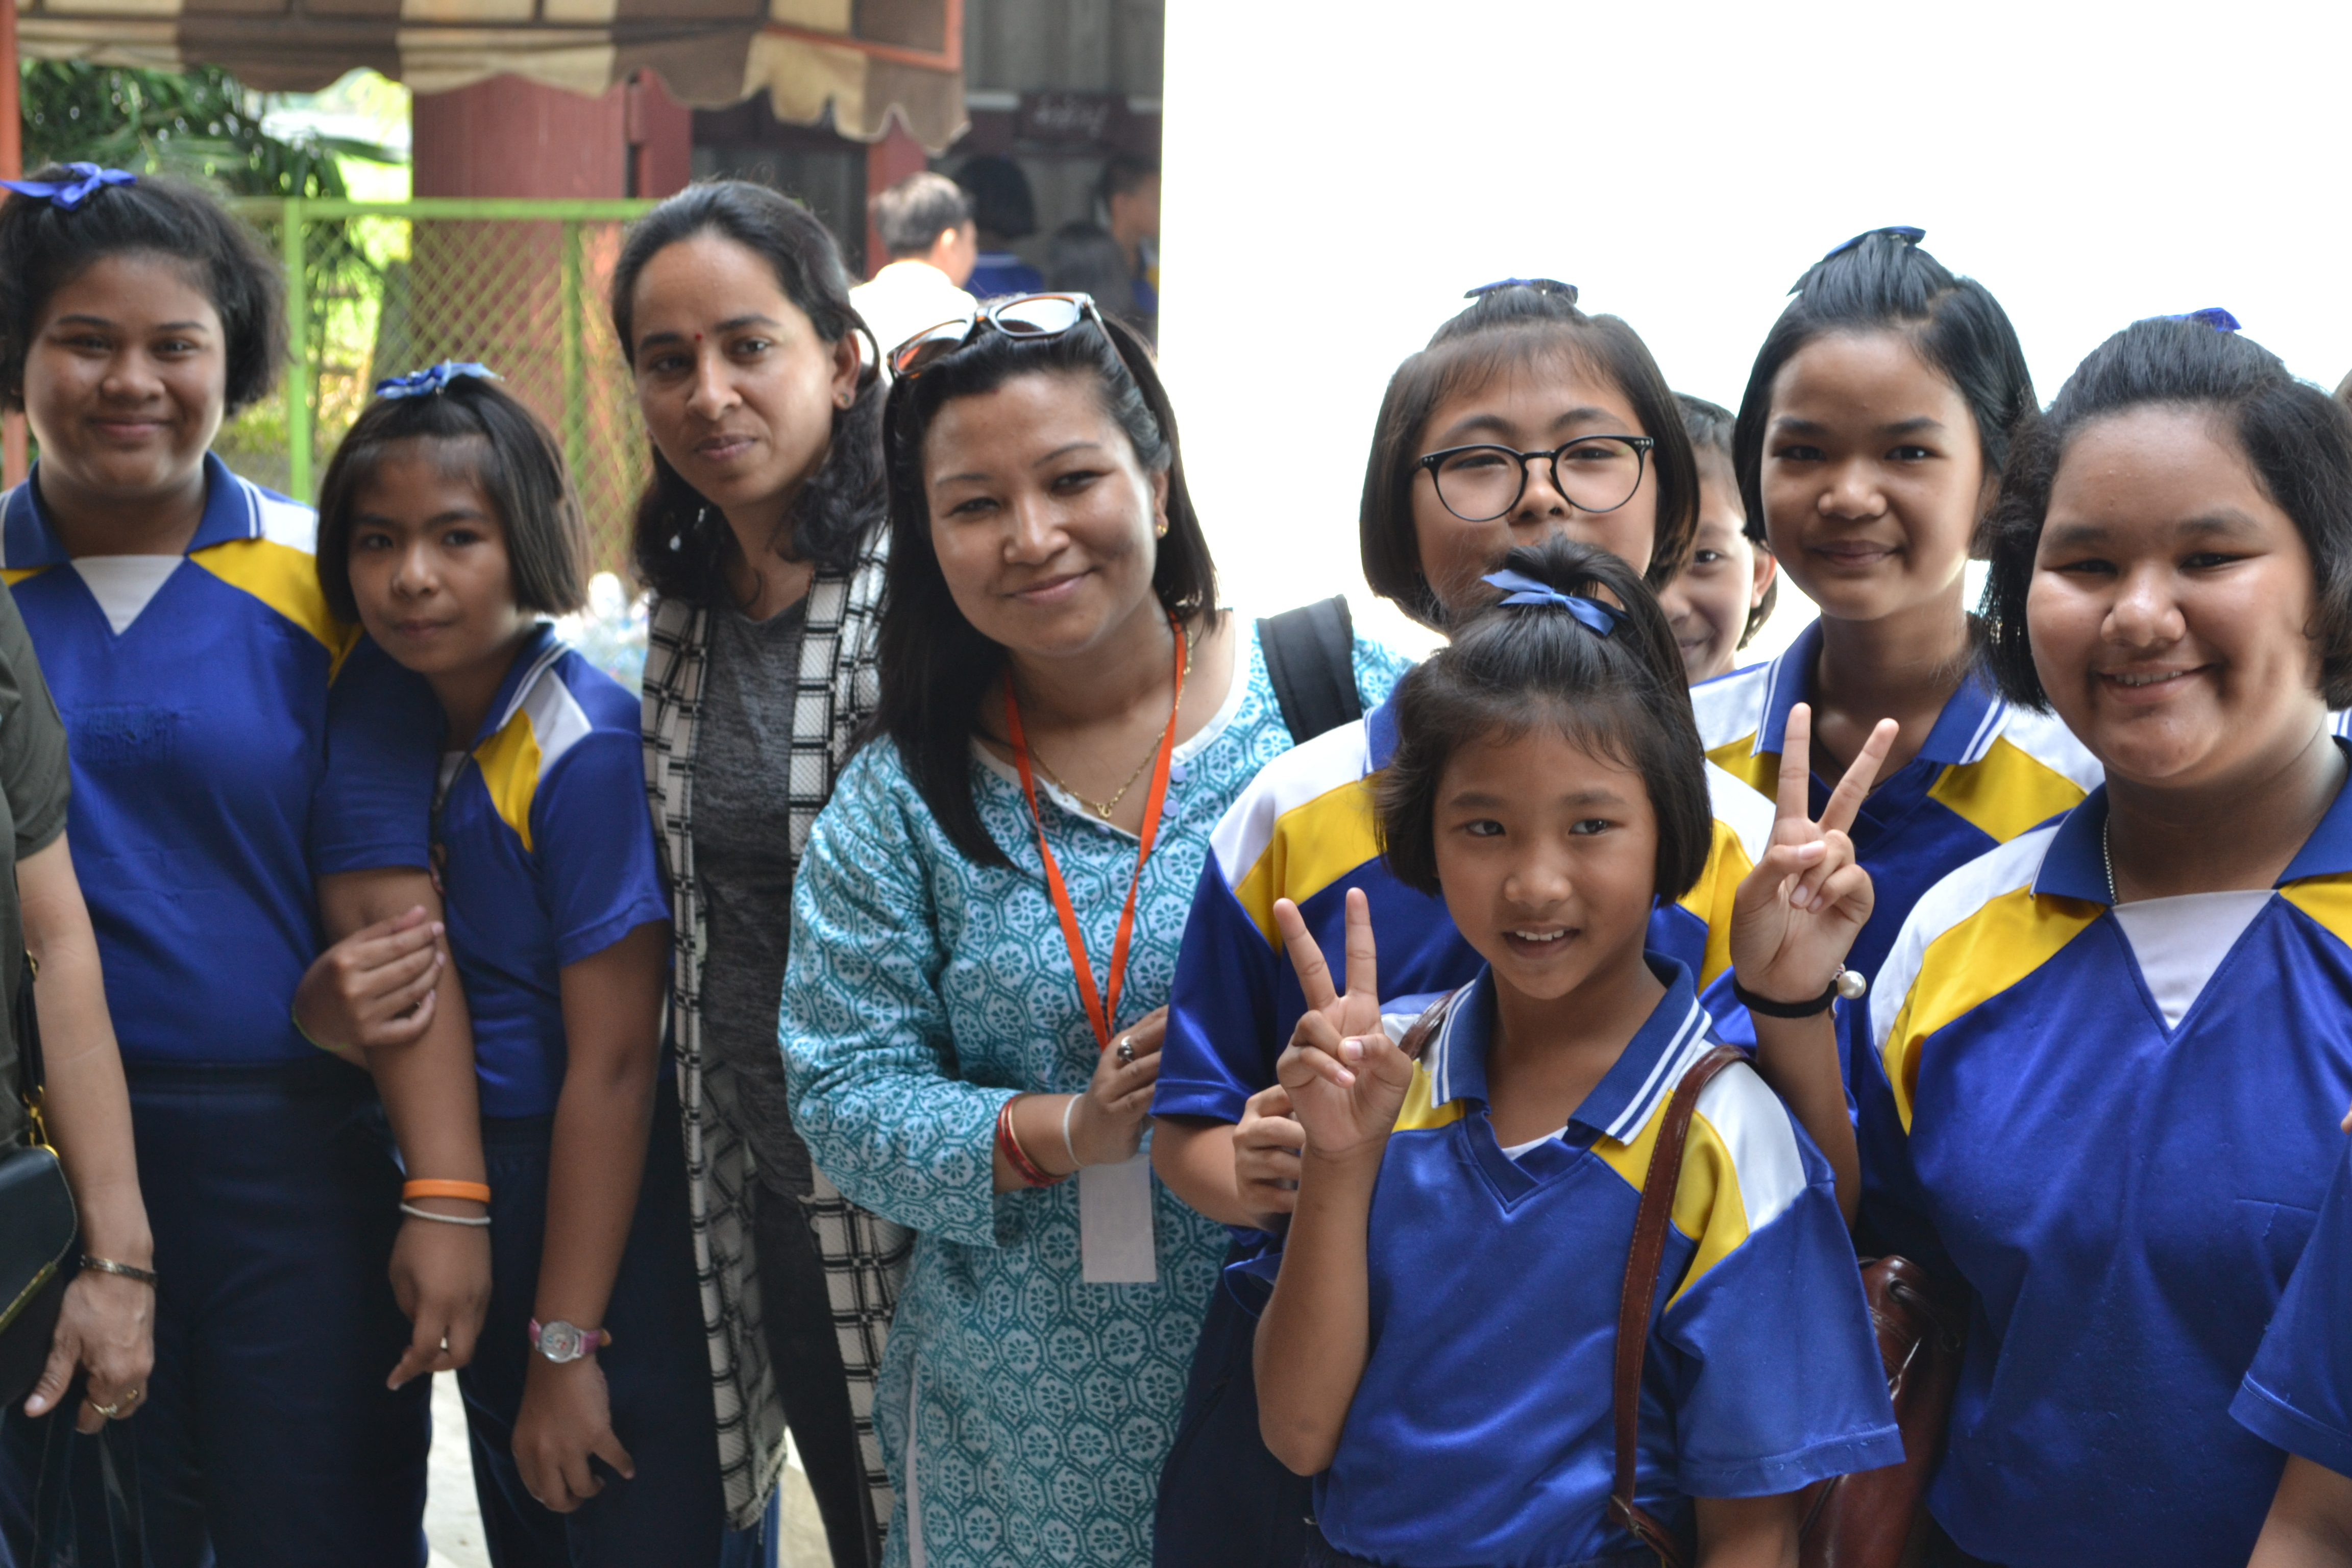 Nepal's Sajanmi Boyracharaya (c) with Thai pupils during school